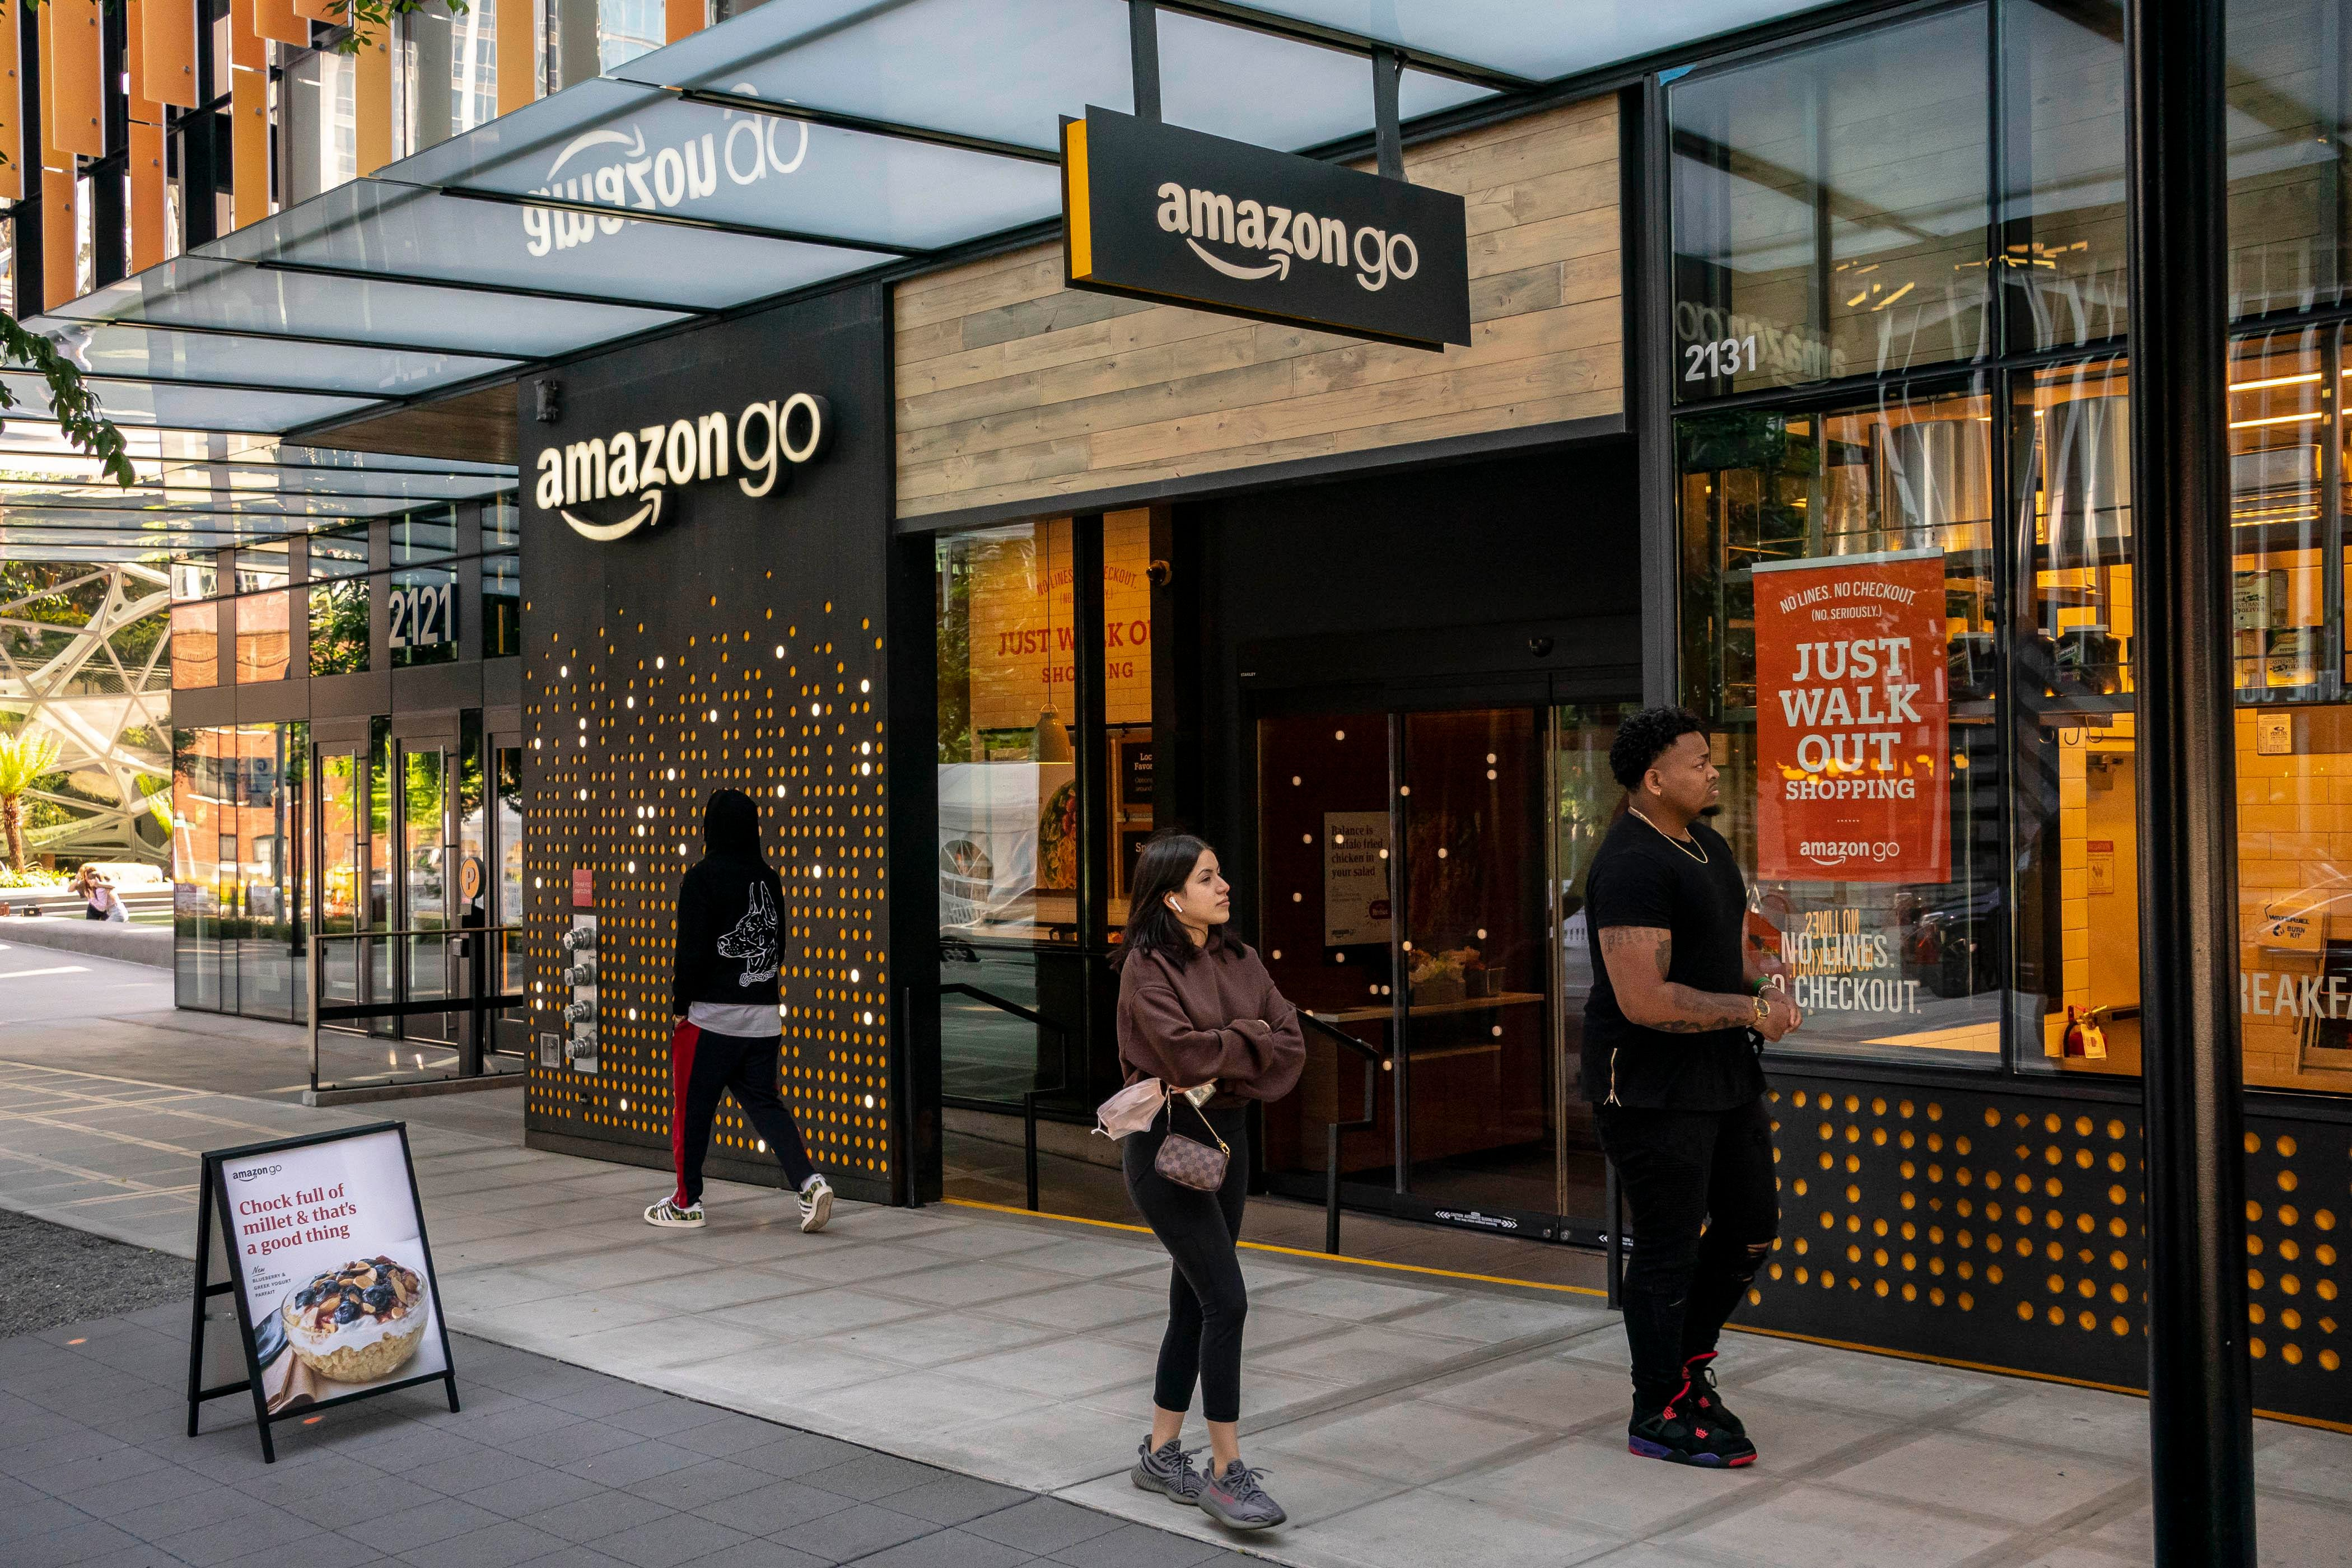 Amazon's Department Store Disruption: If You Can Beat Them... Why Join Them?